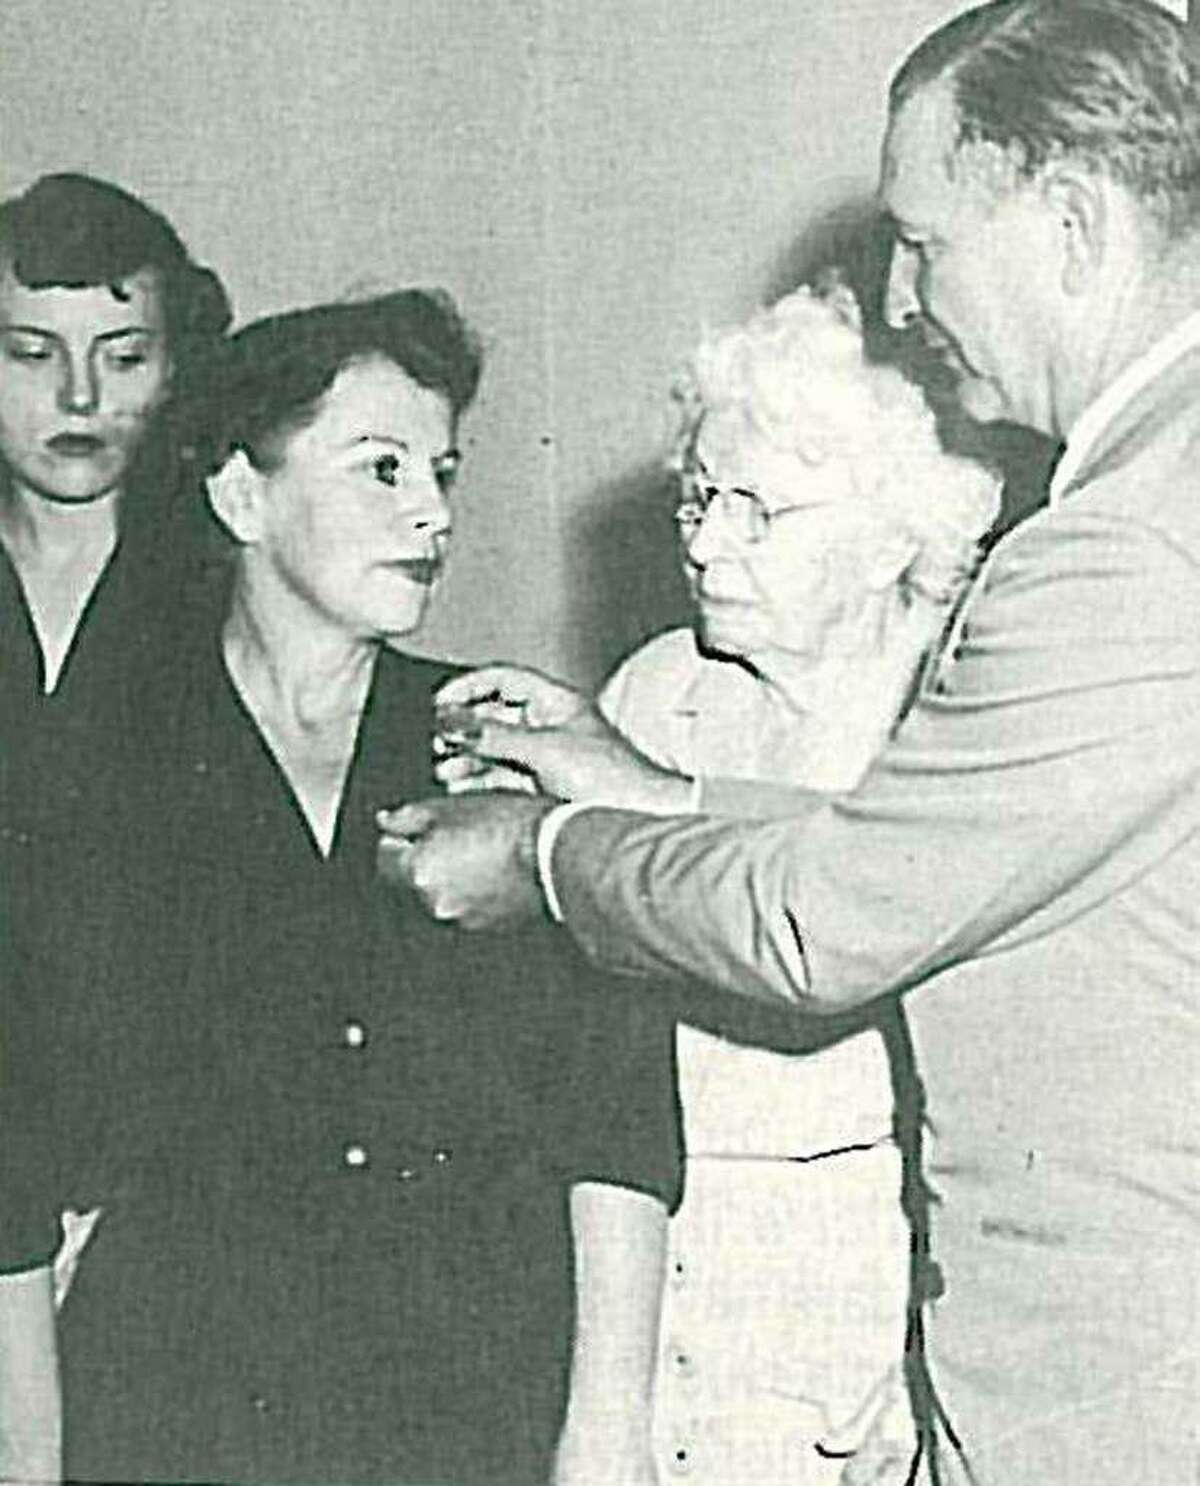 Three generations of the Cochran family as Fannie Pearl Surratt has her Montgomery County Sheriff's badge pinned on by her parents. Pictured from left are Gloria Surratt Burch, Fannie Pearl Surratt and Laura G. Cochran and Fred Cochran.